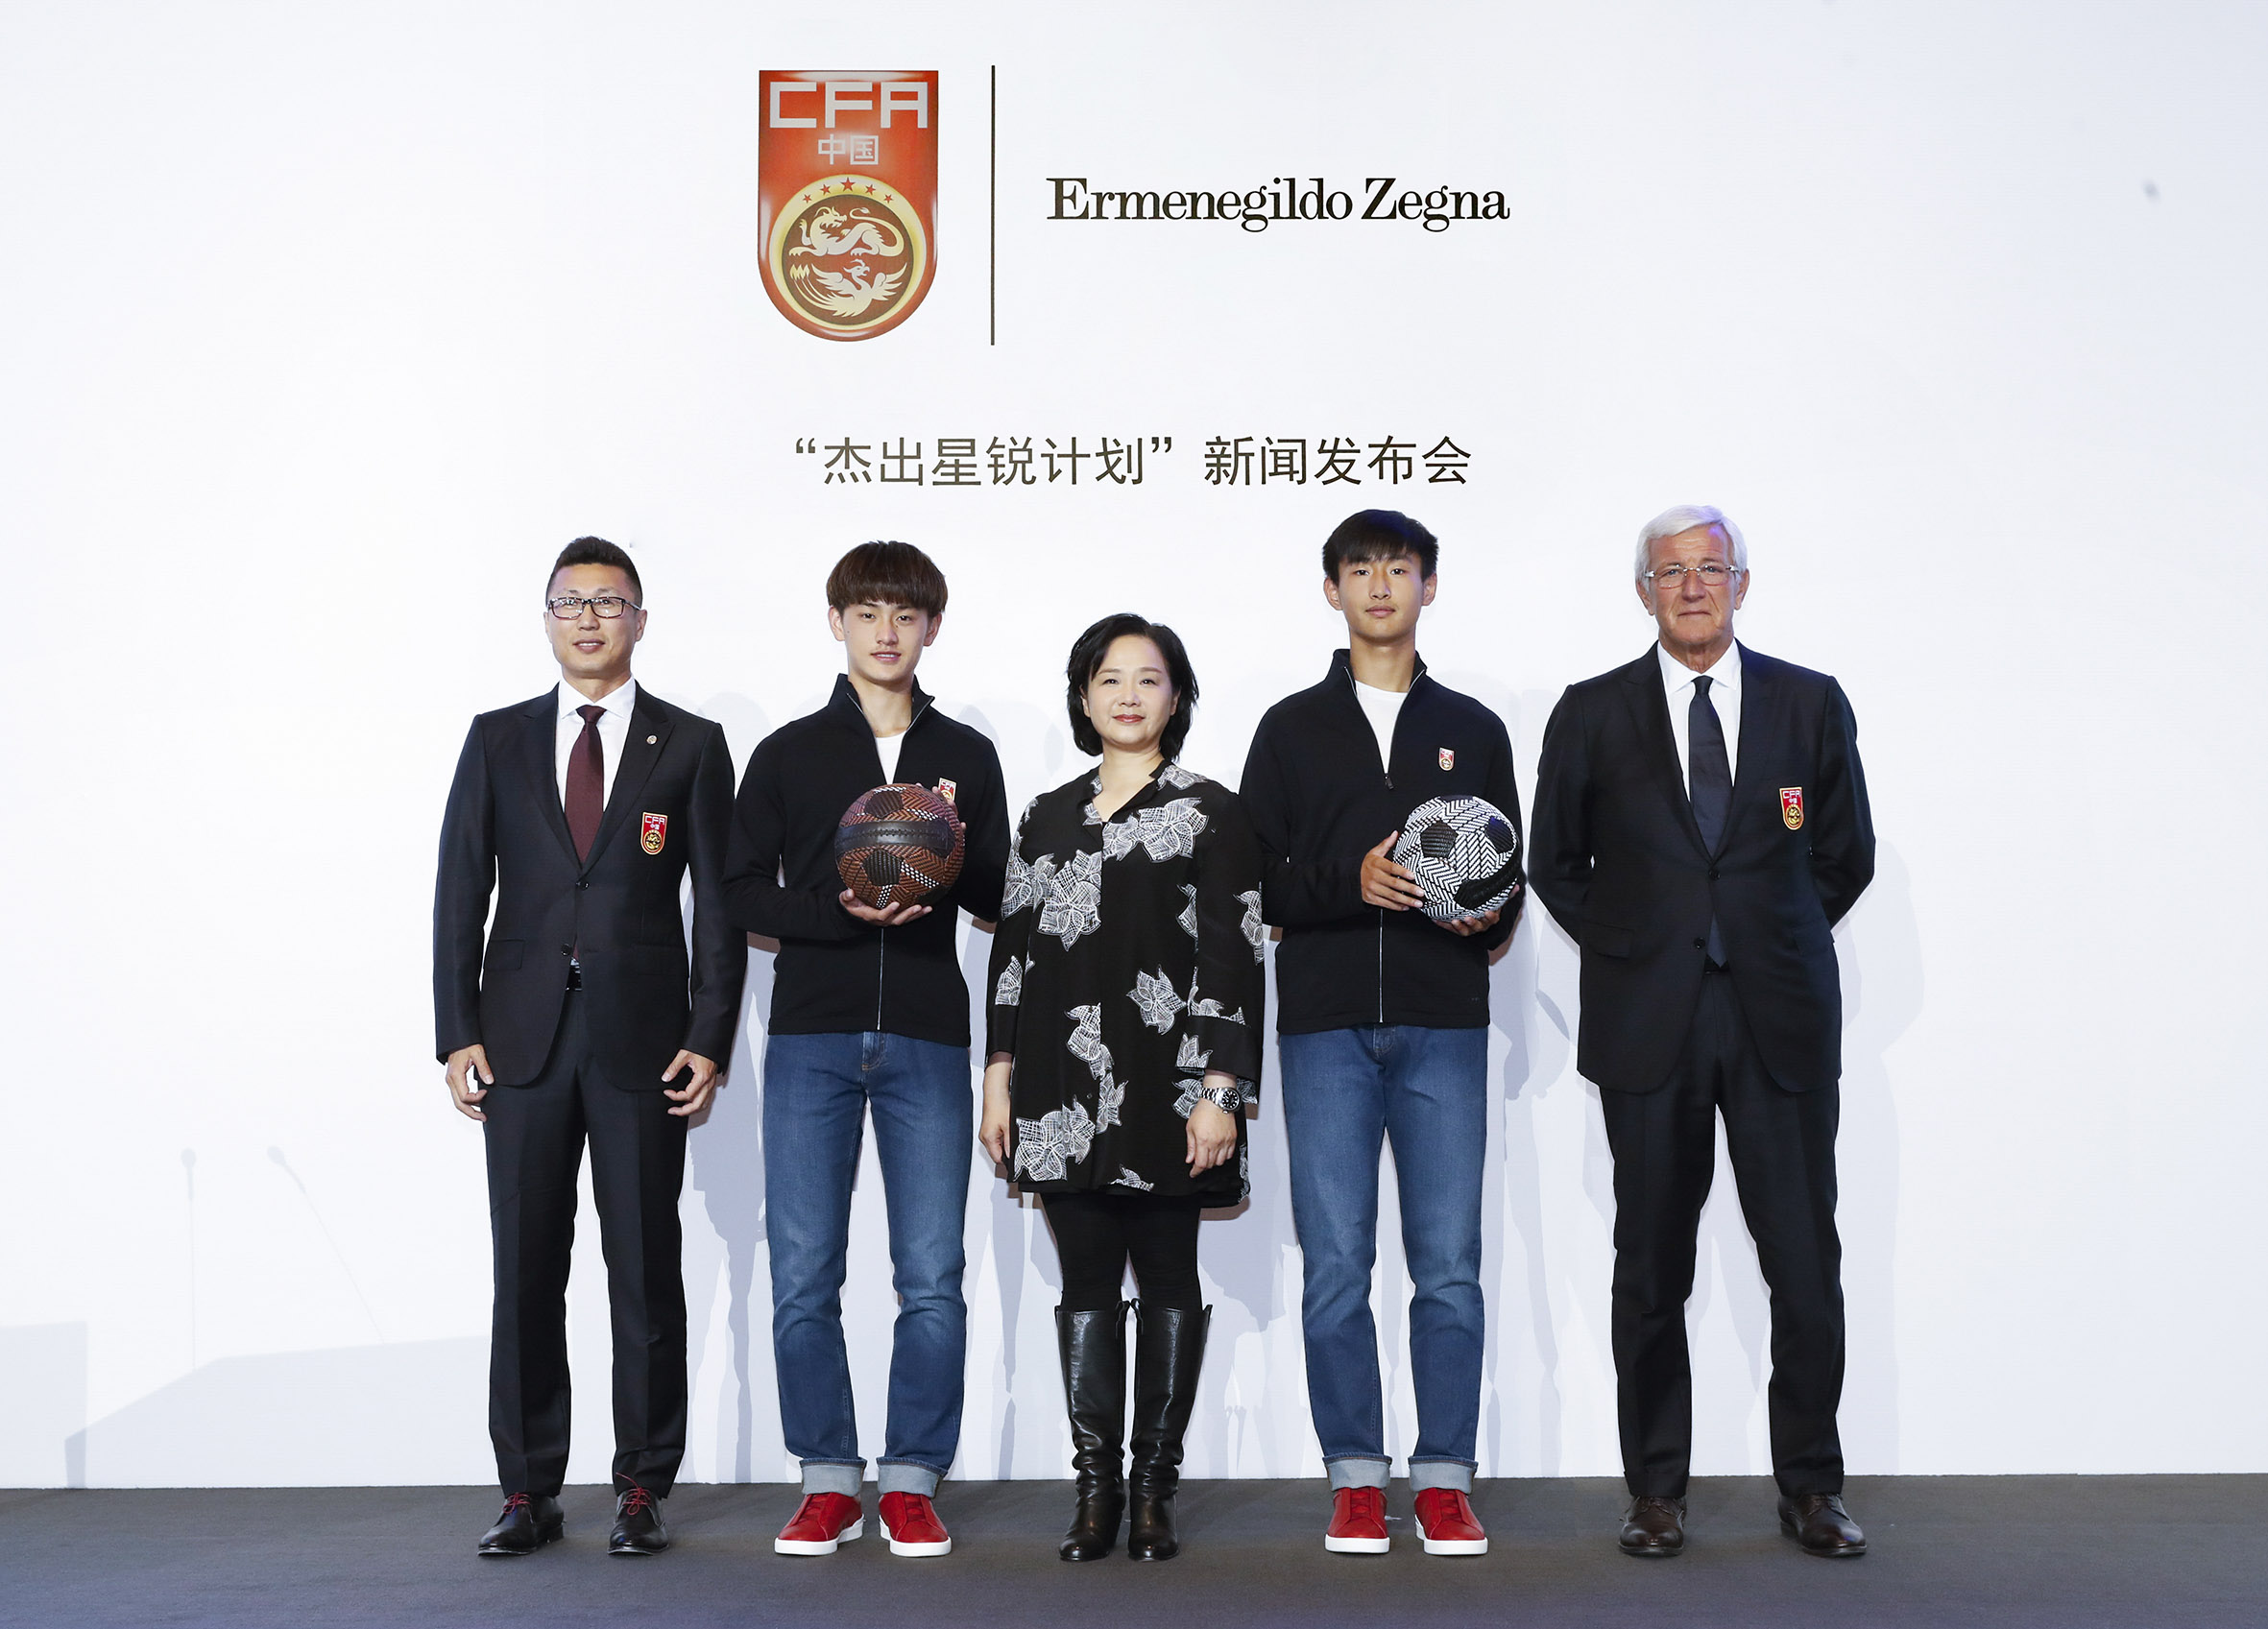 Zegna e China football per Rising star - MilanoFinanza.it f5471271c89